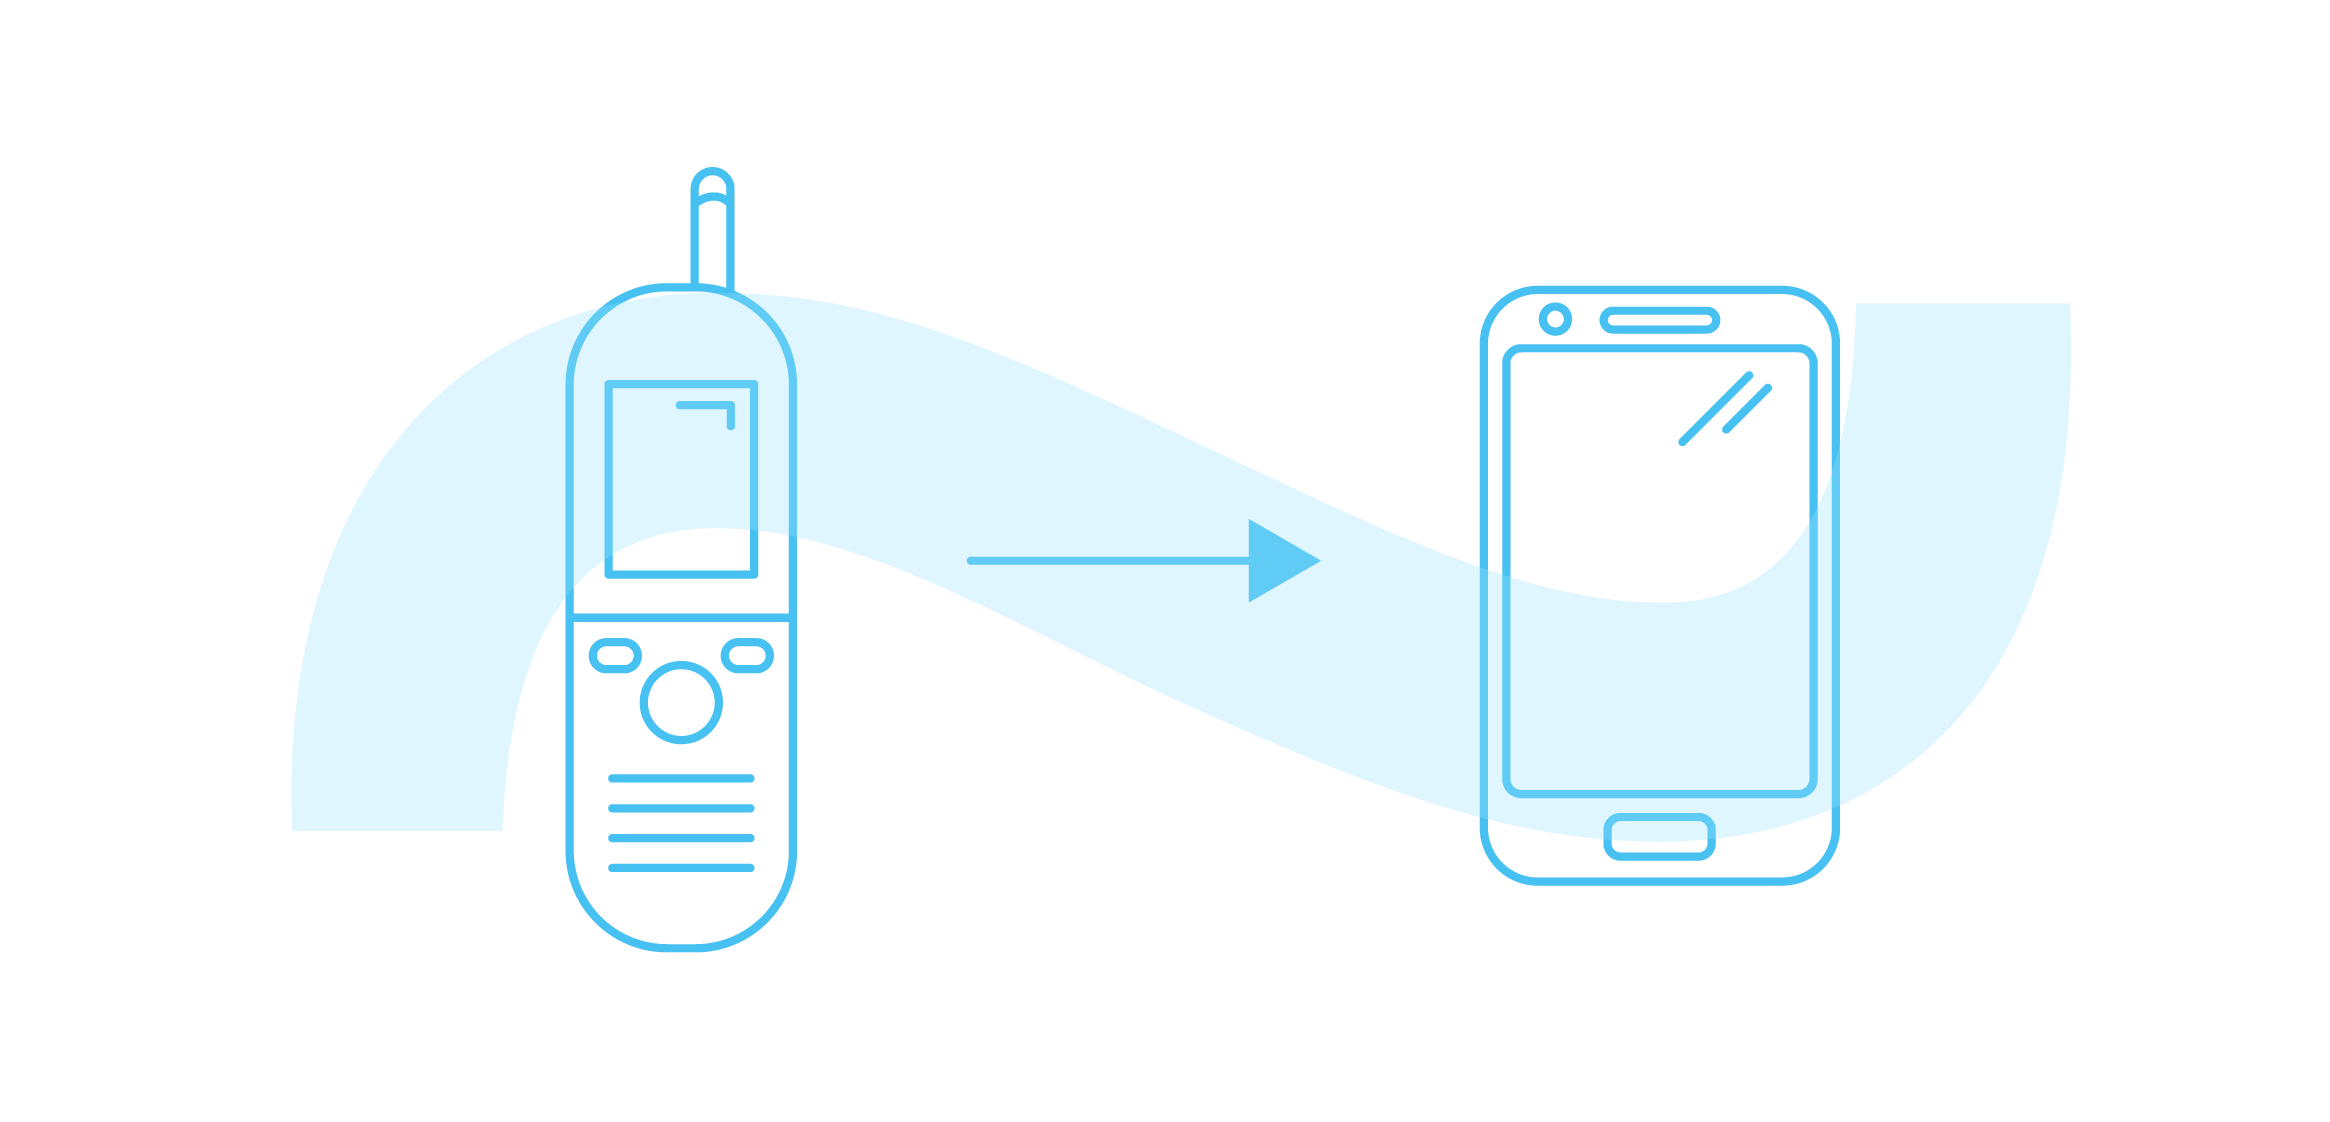 R&D, mobile devices